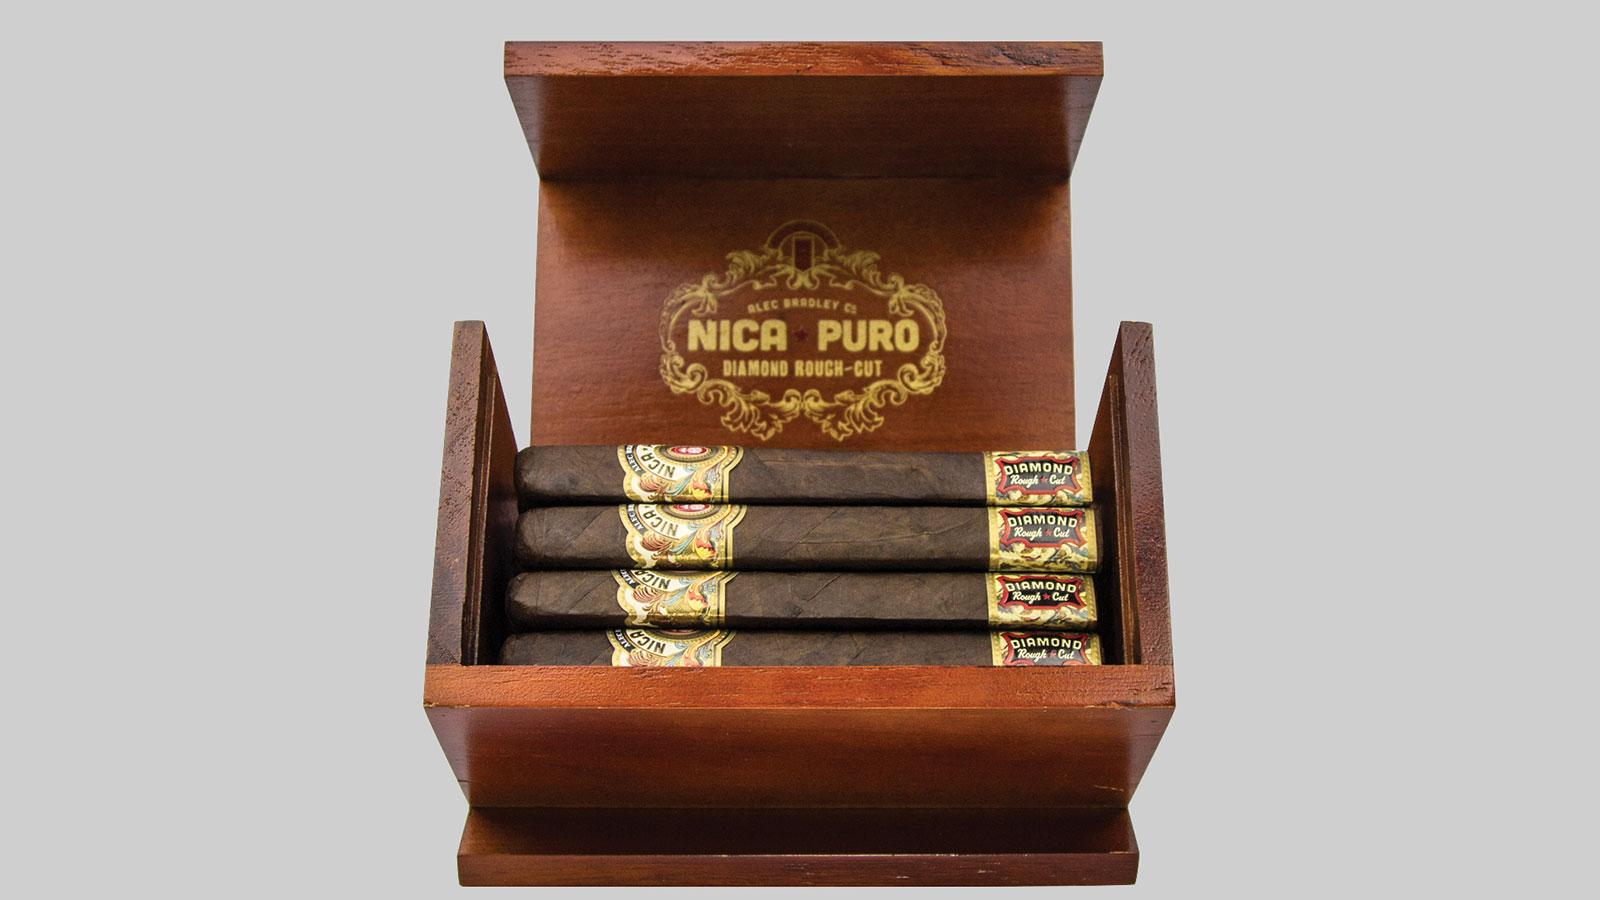 Alec Bradley Ships Fresh Batch Of Nica Puro Diamond Rough-Cut